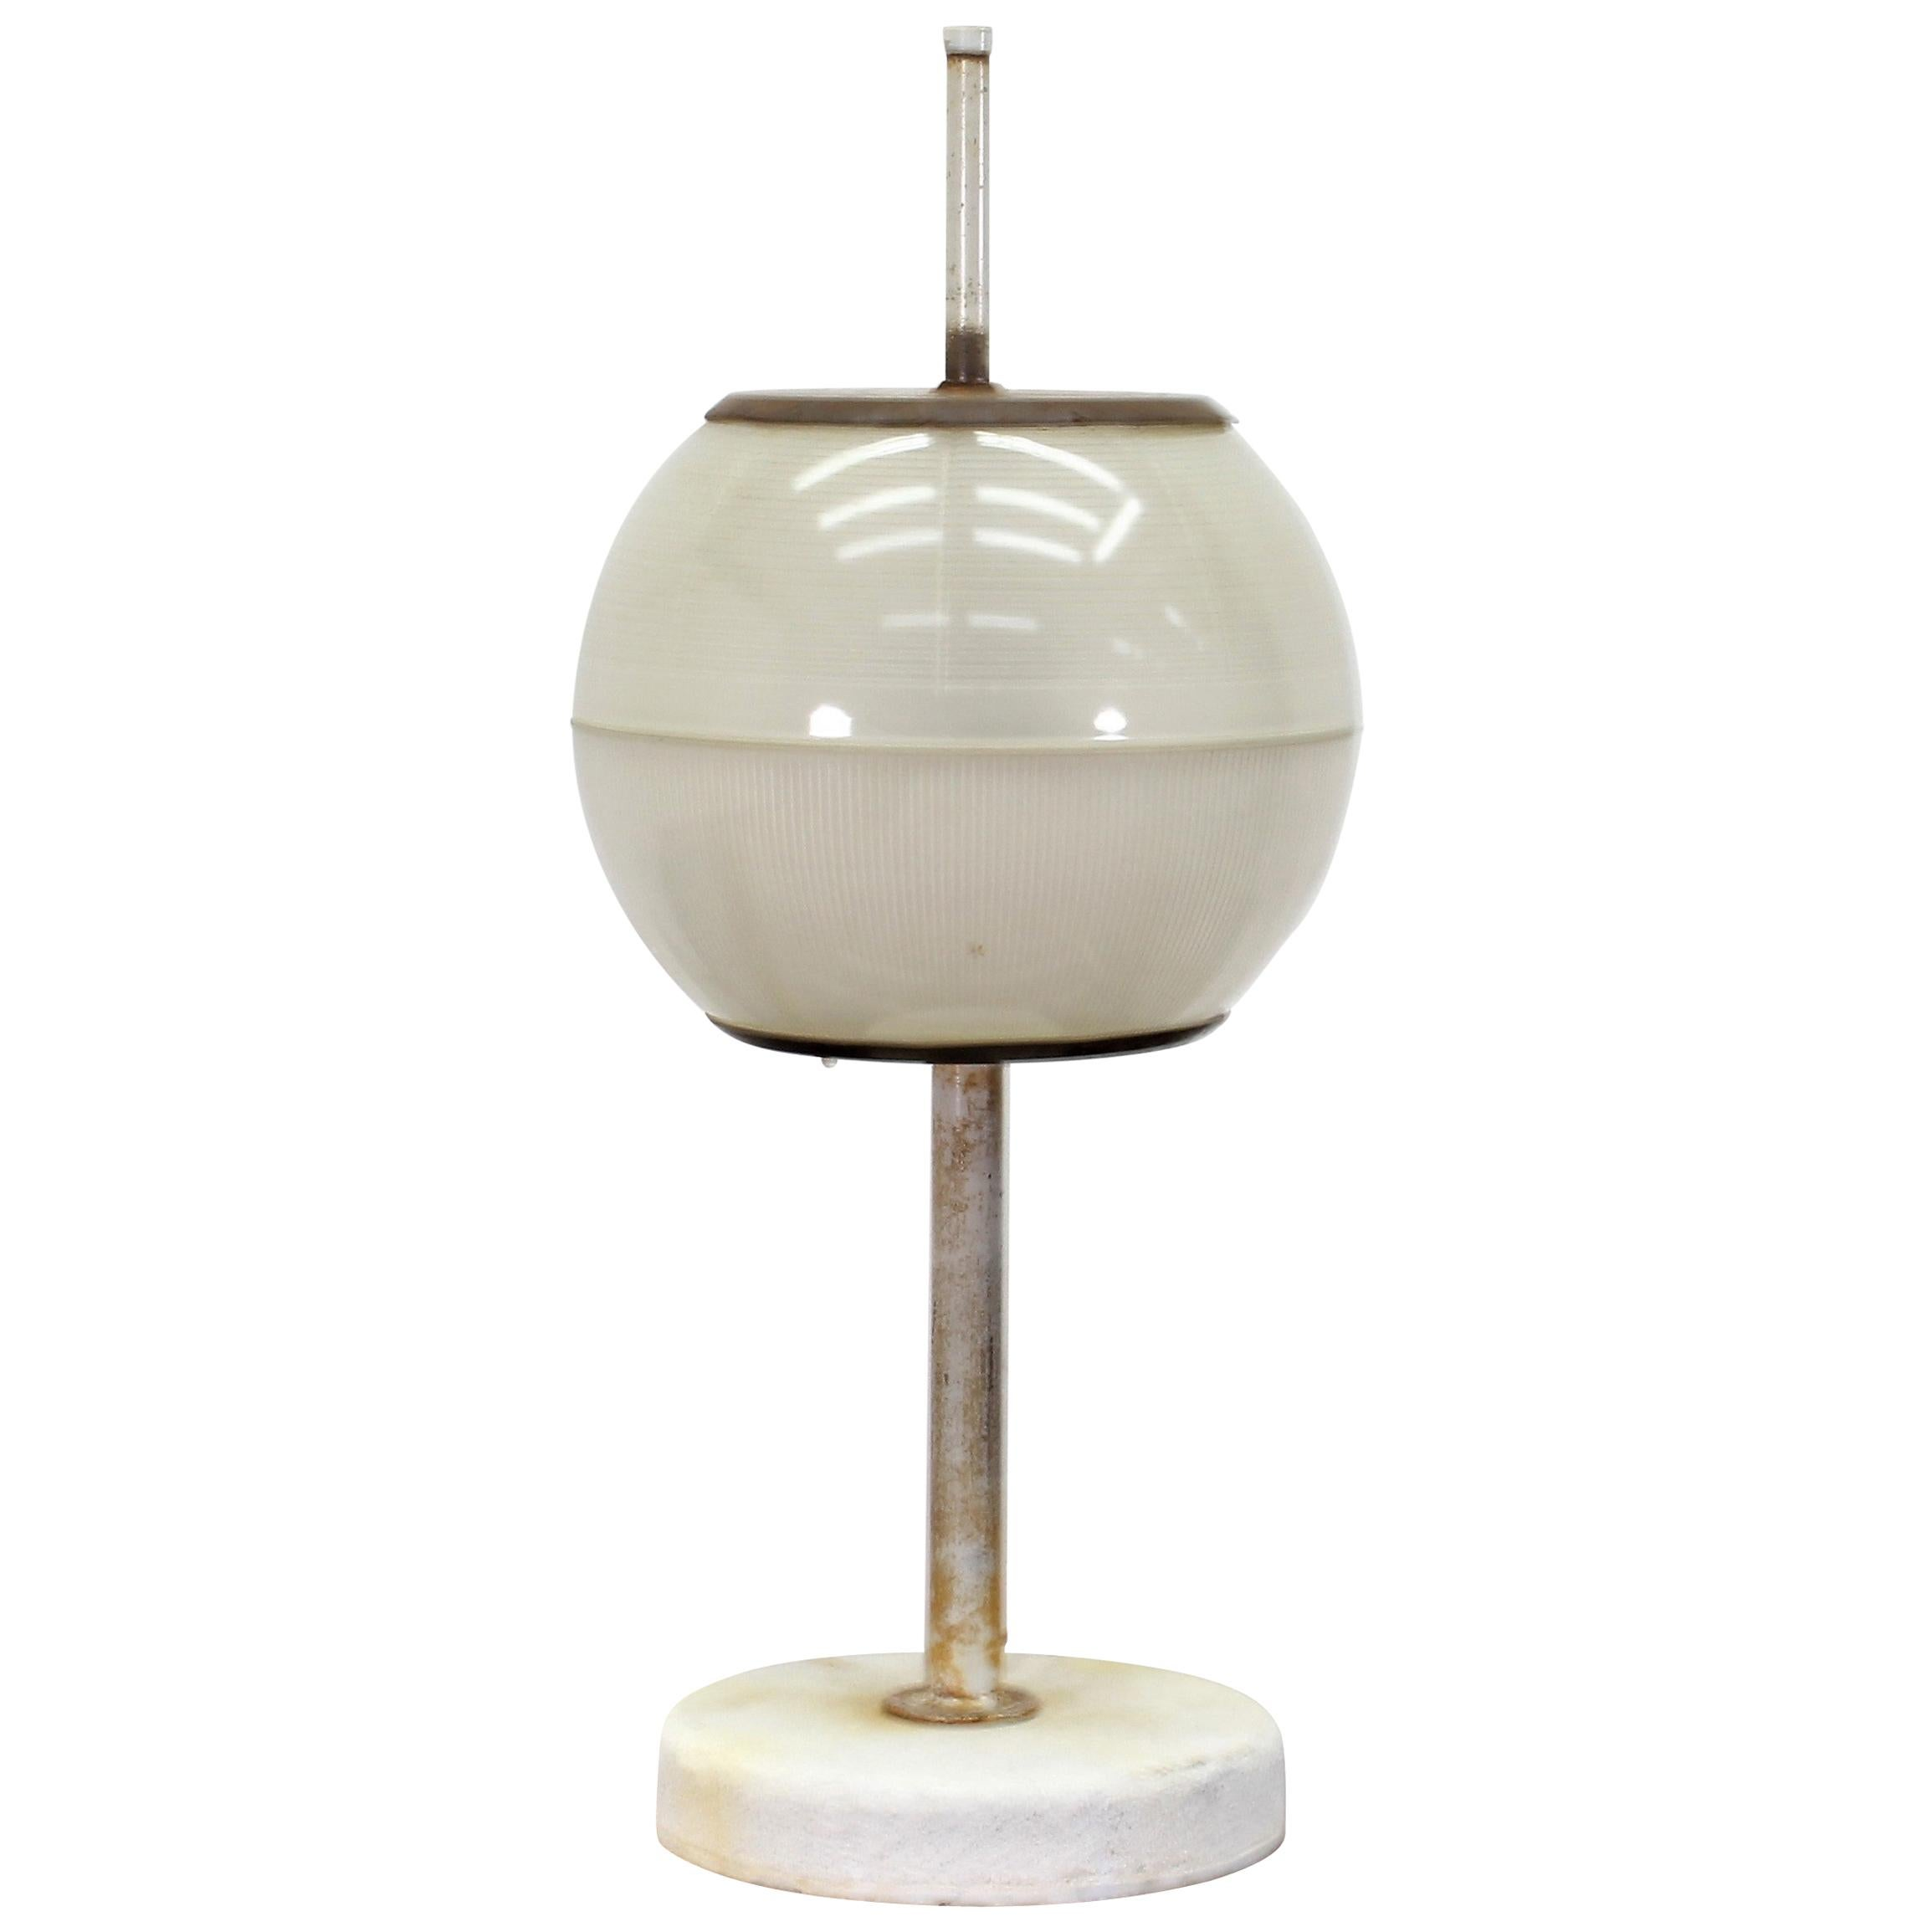 Midcentury Table Glass and Metal Lamp by Ignazio Gardella for Azucena, Italy